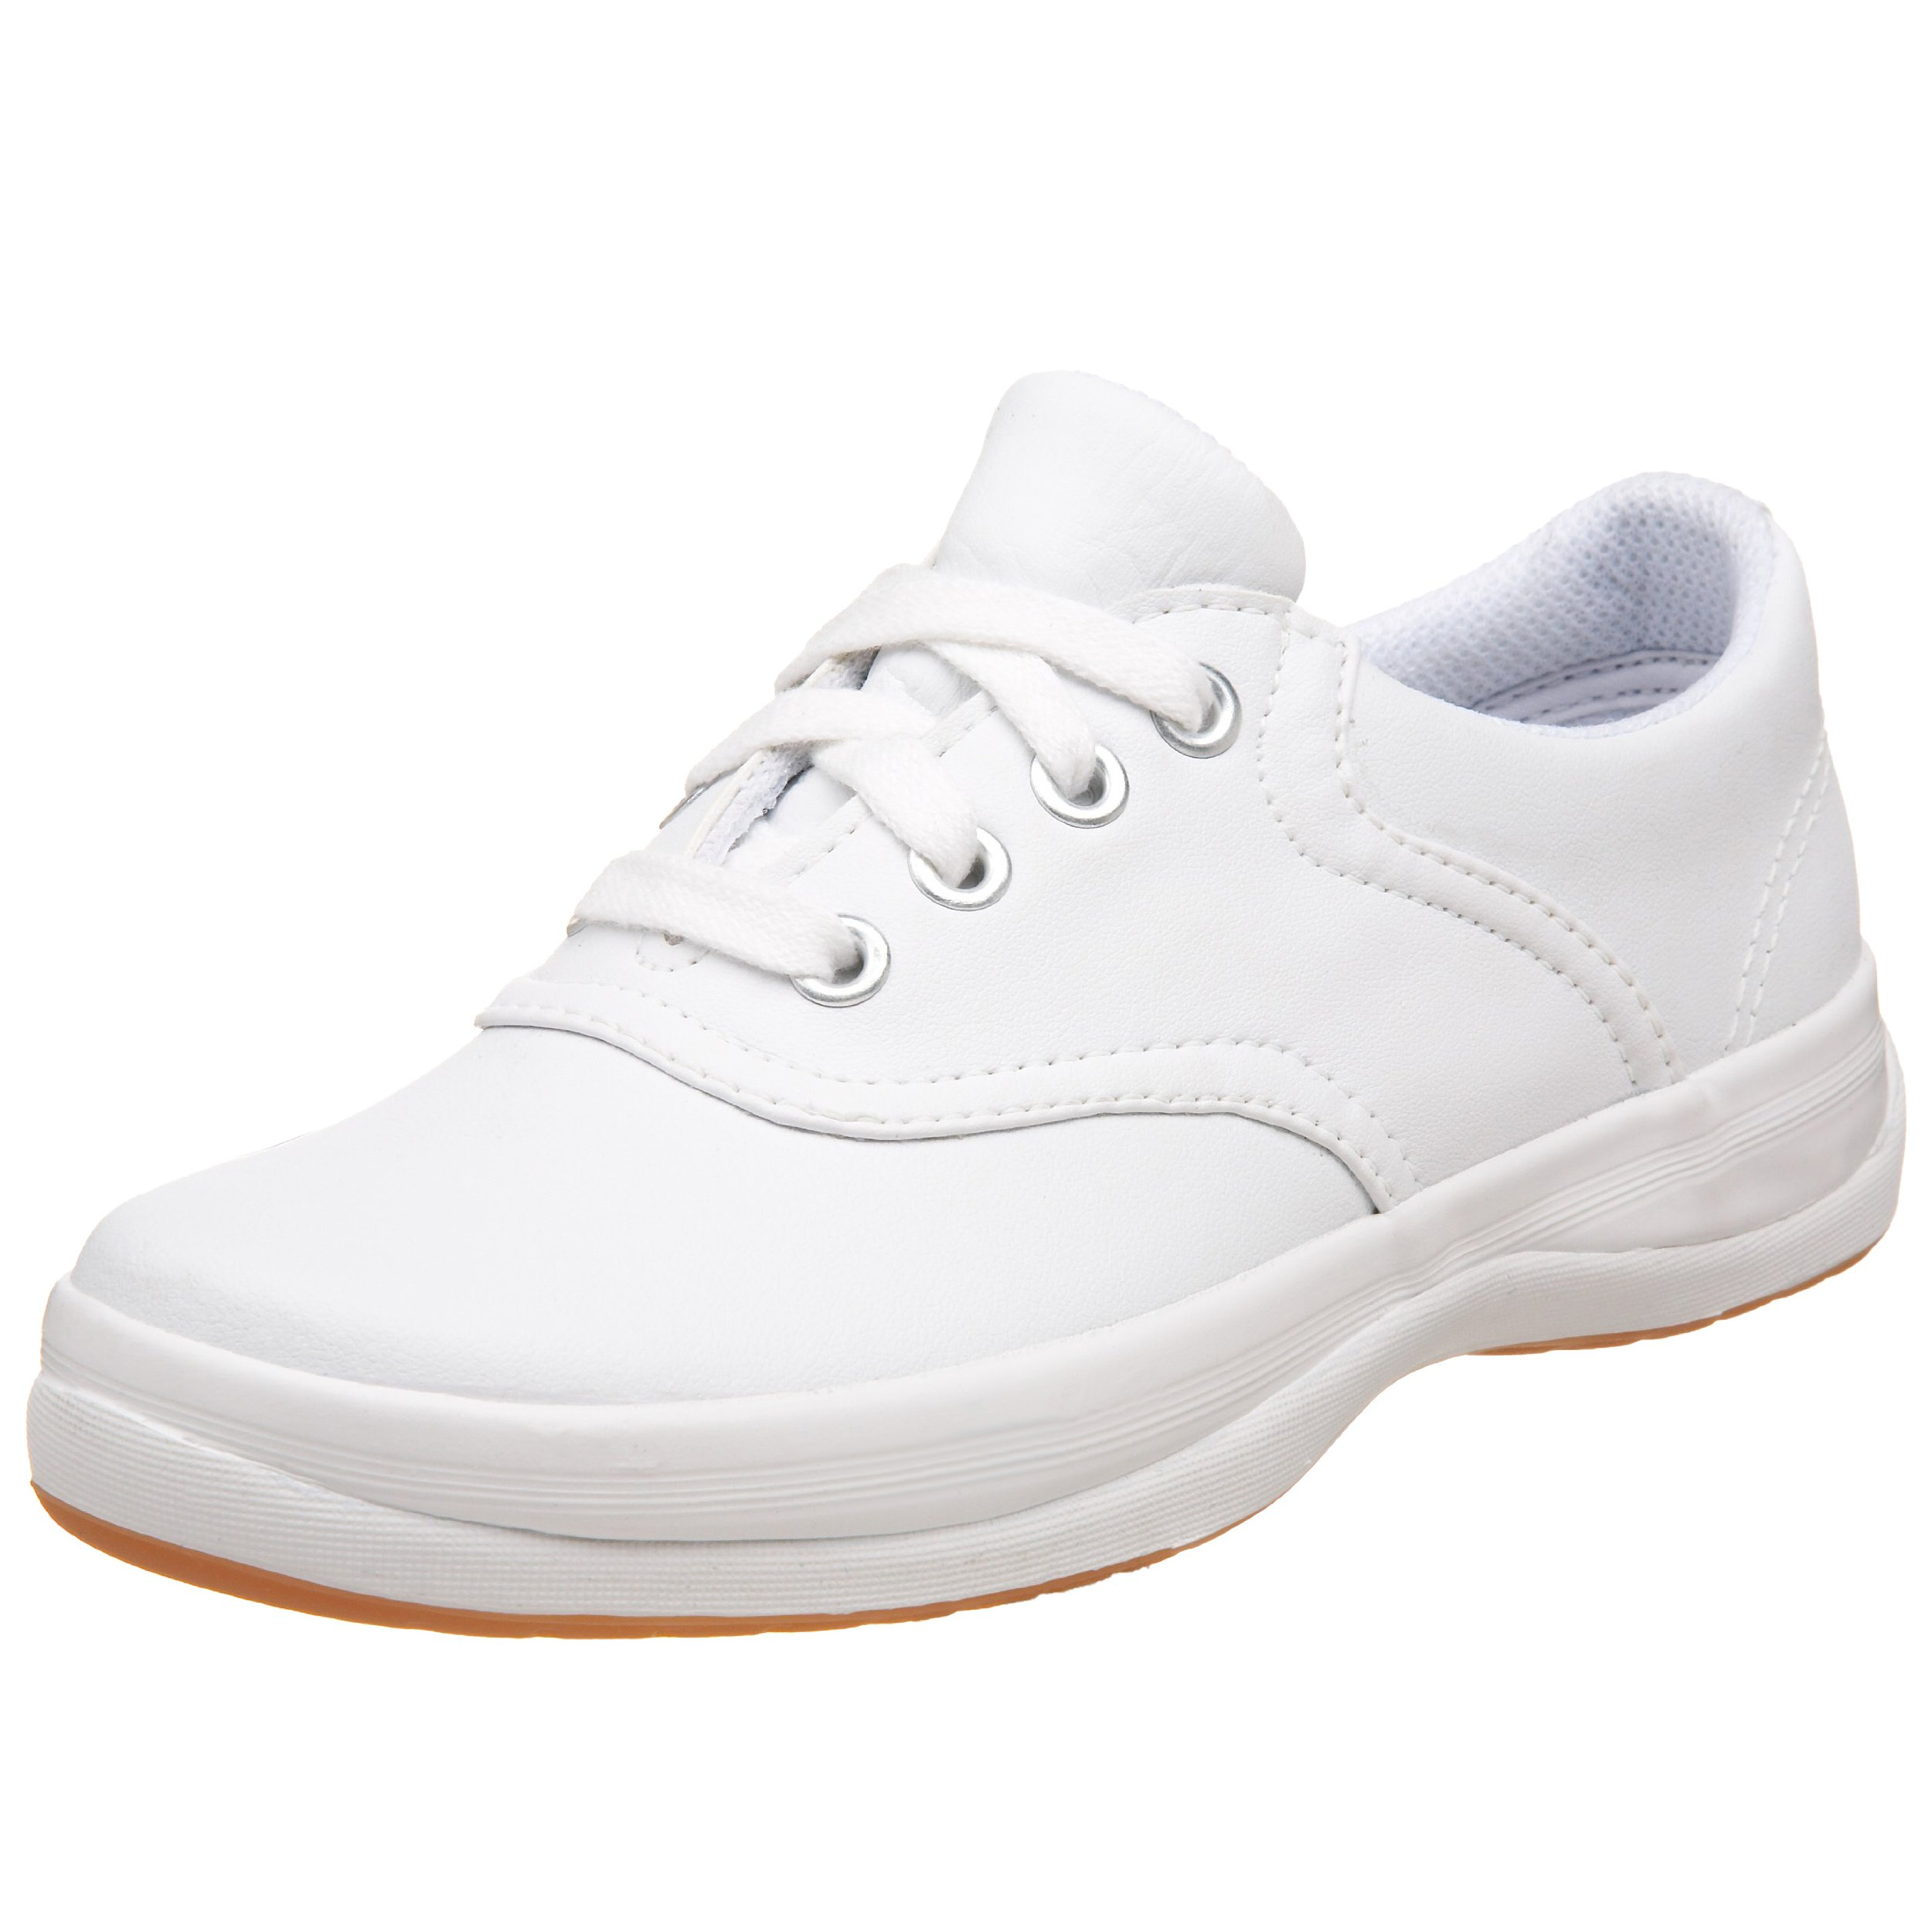 Keds School Days II Sneaker , White, 1 Little Kid M